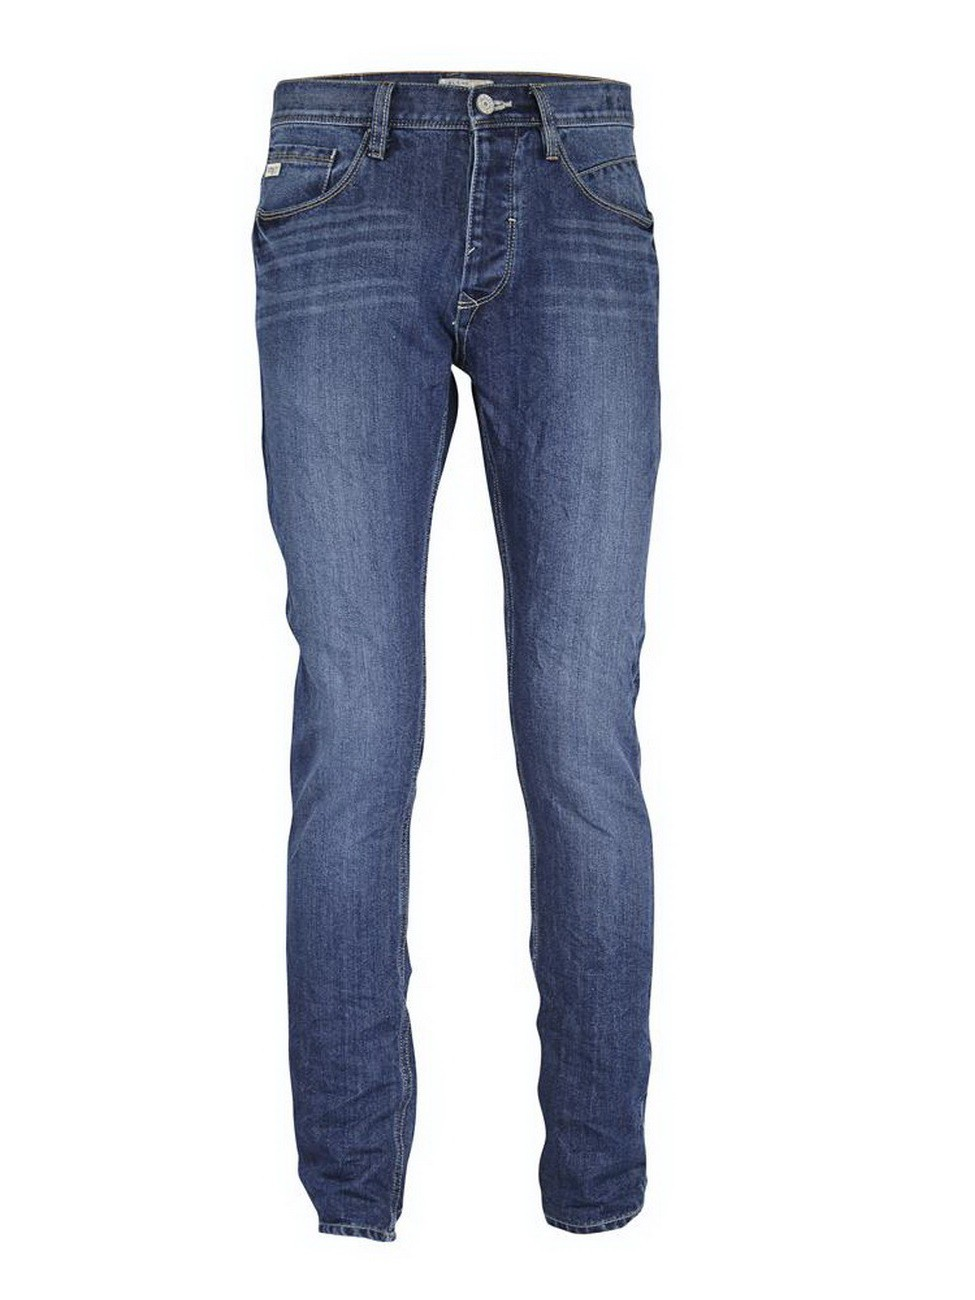 Blend Herren Jeans Twister - Slim Fit - Blau - Middle Blue - Baumwollmischung